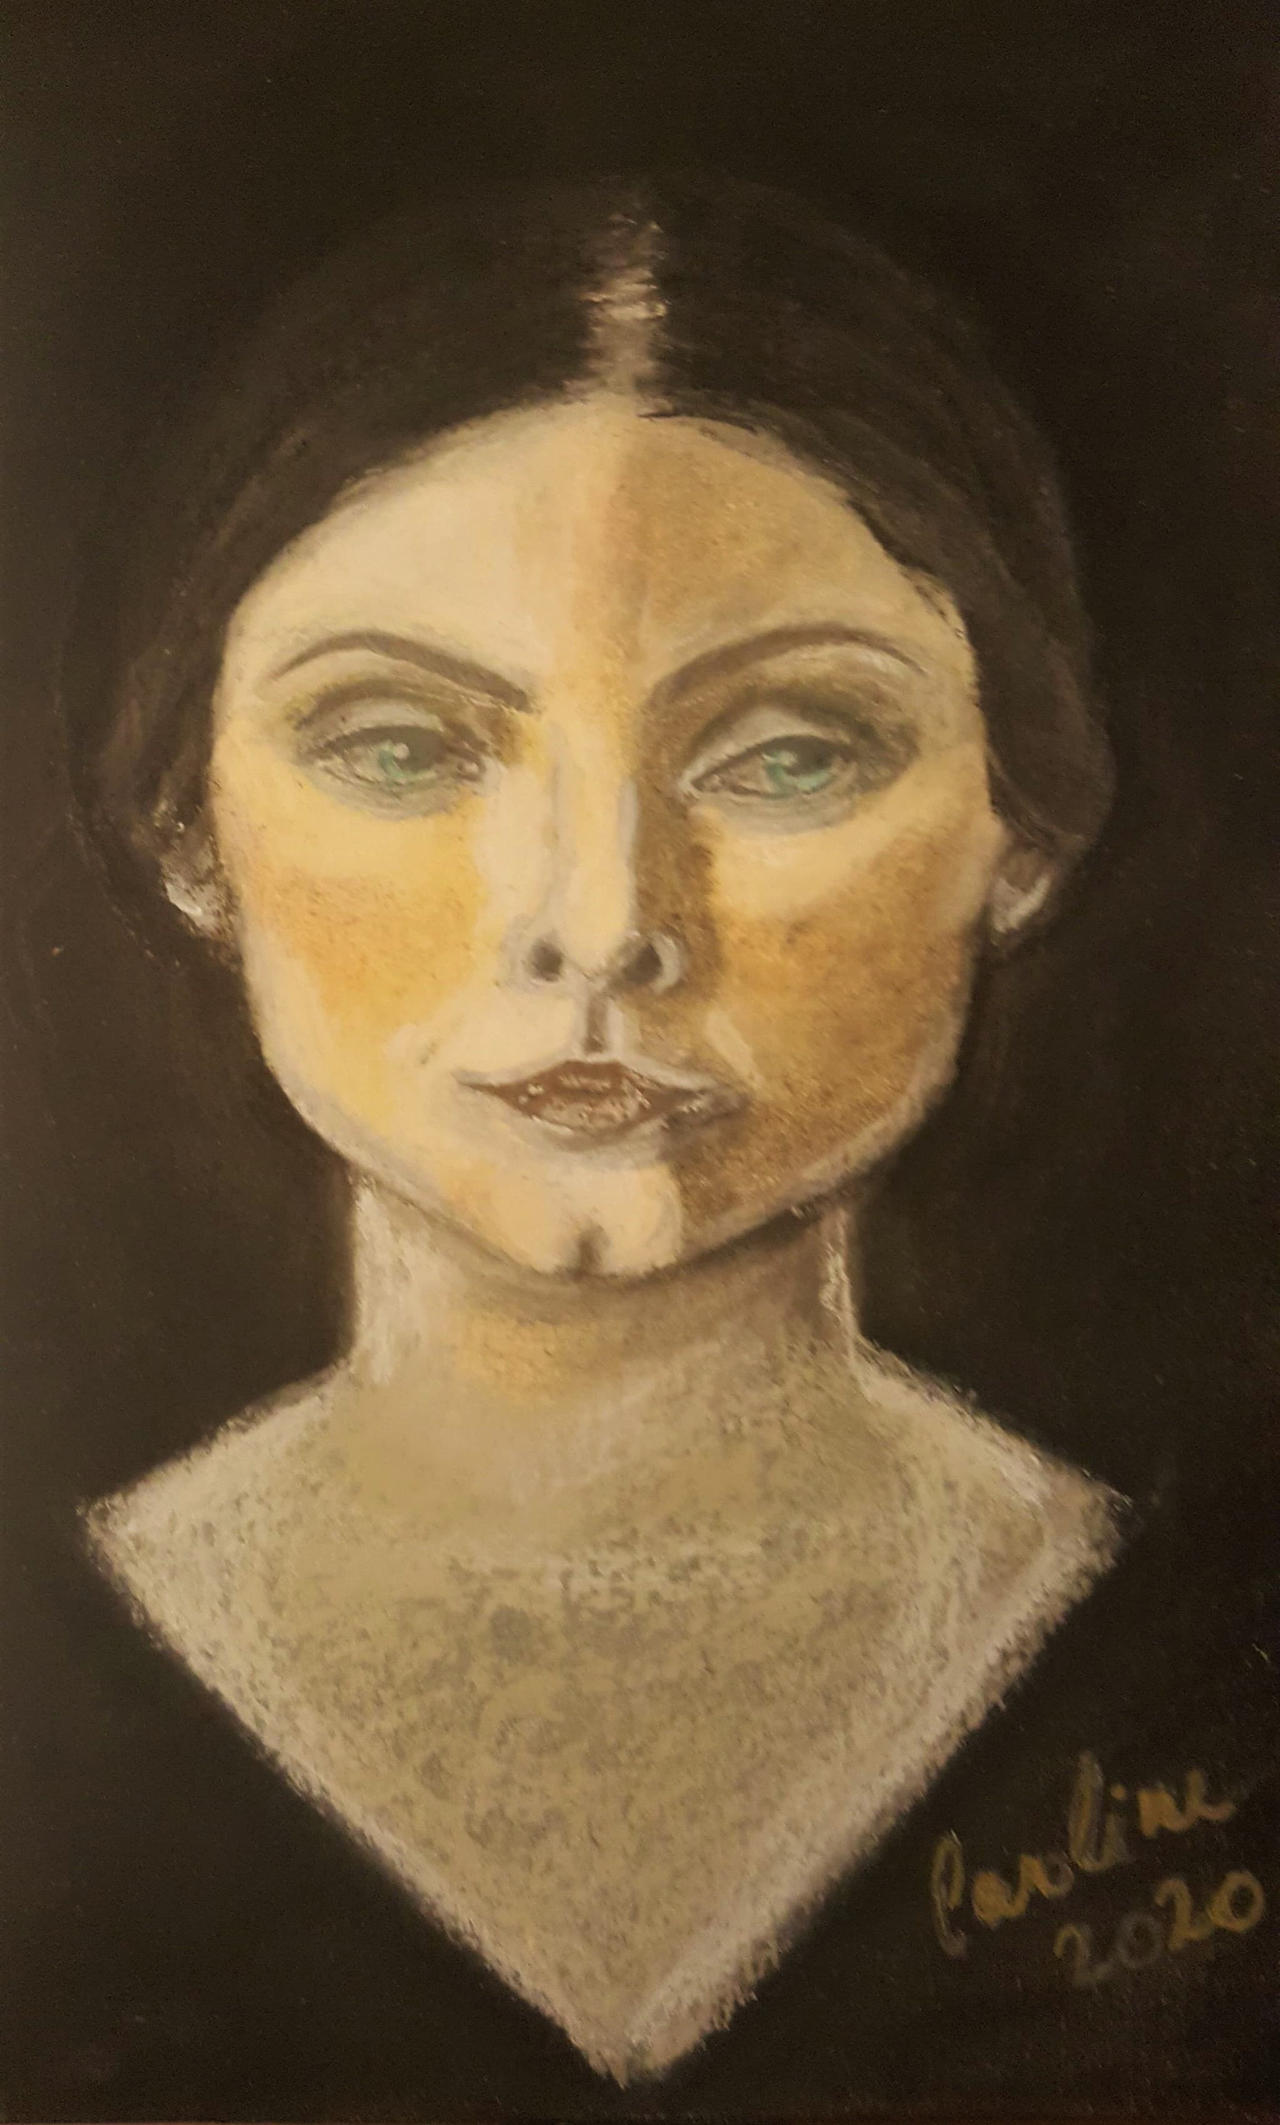 Tissaia De Vries Myanna Buring By Acrossriverstyx On Deviantart Enjoy the best quotes from tissaia de vries. deviantart